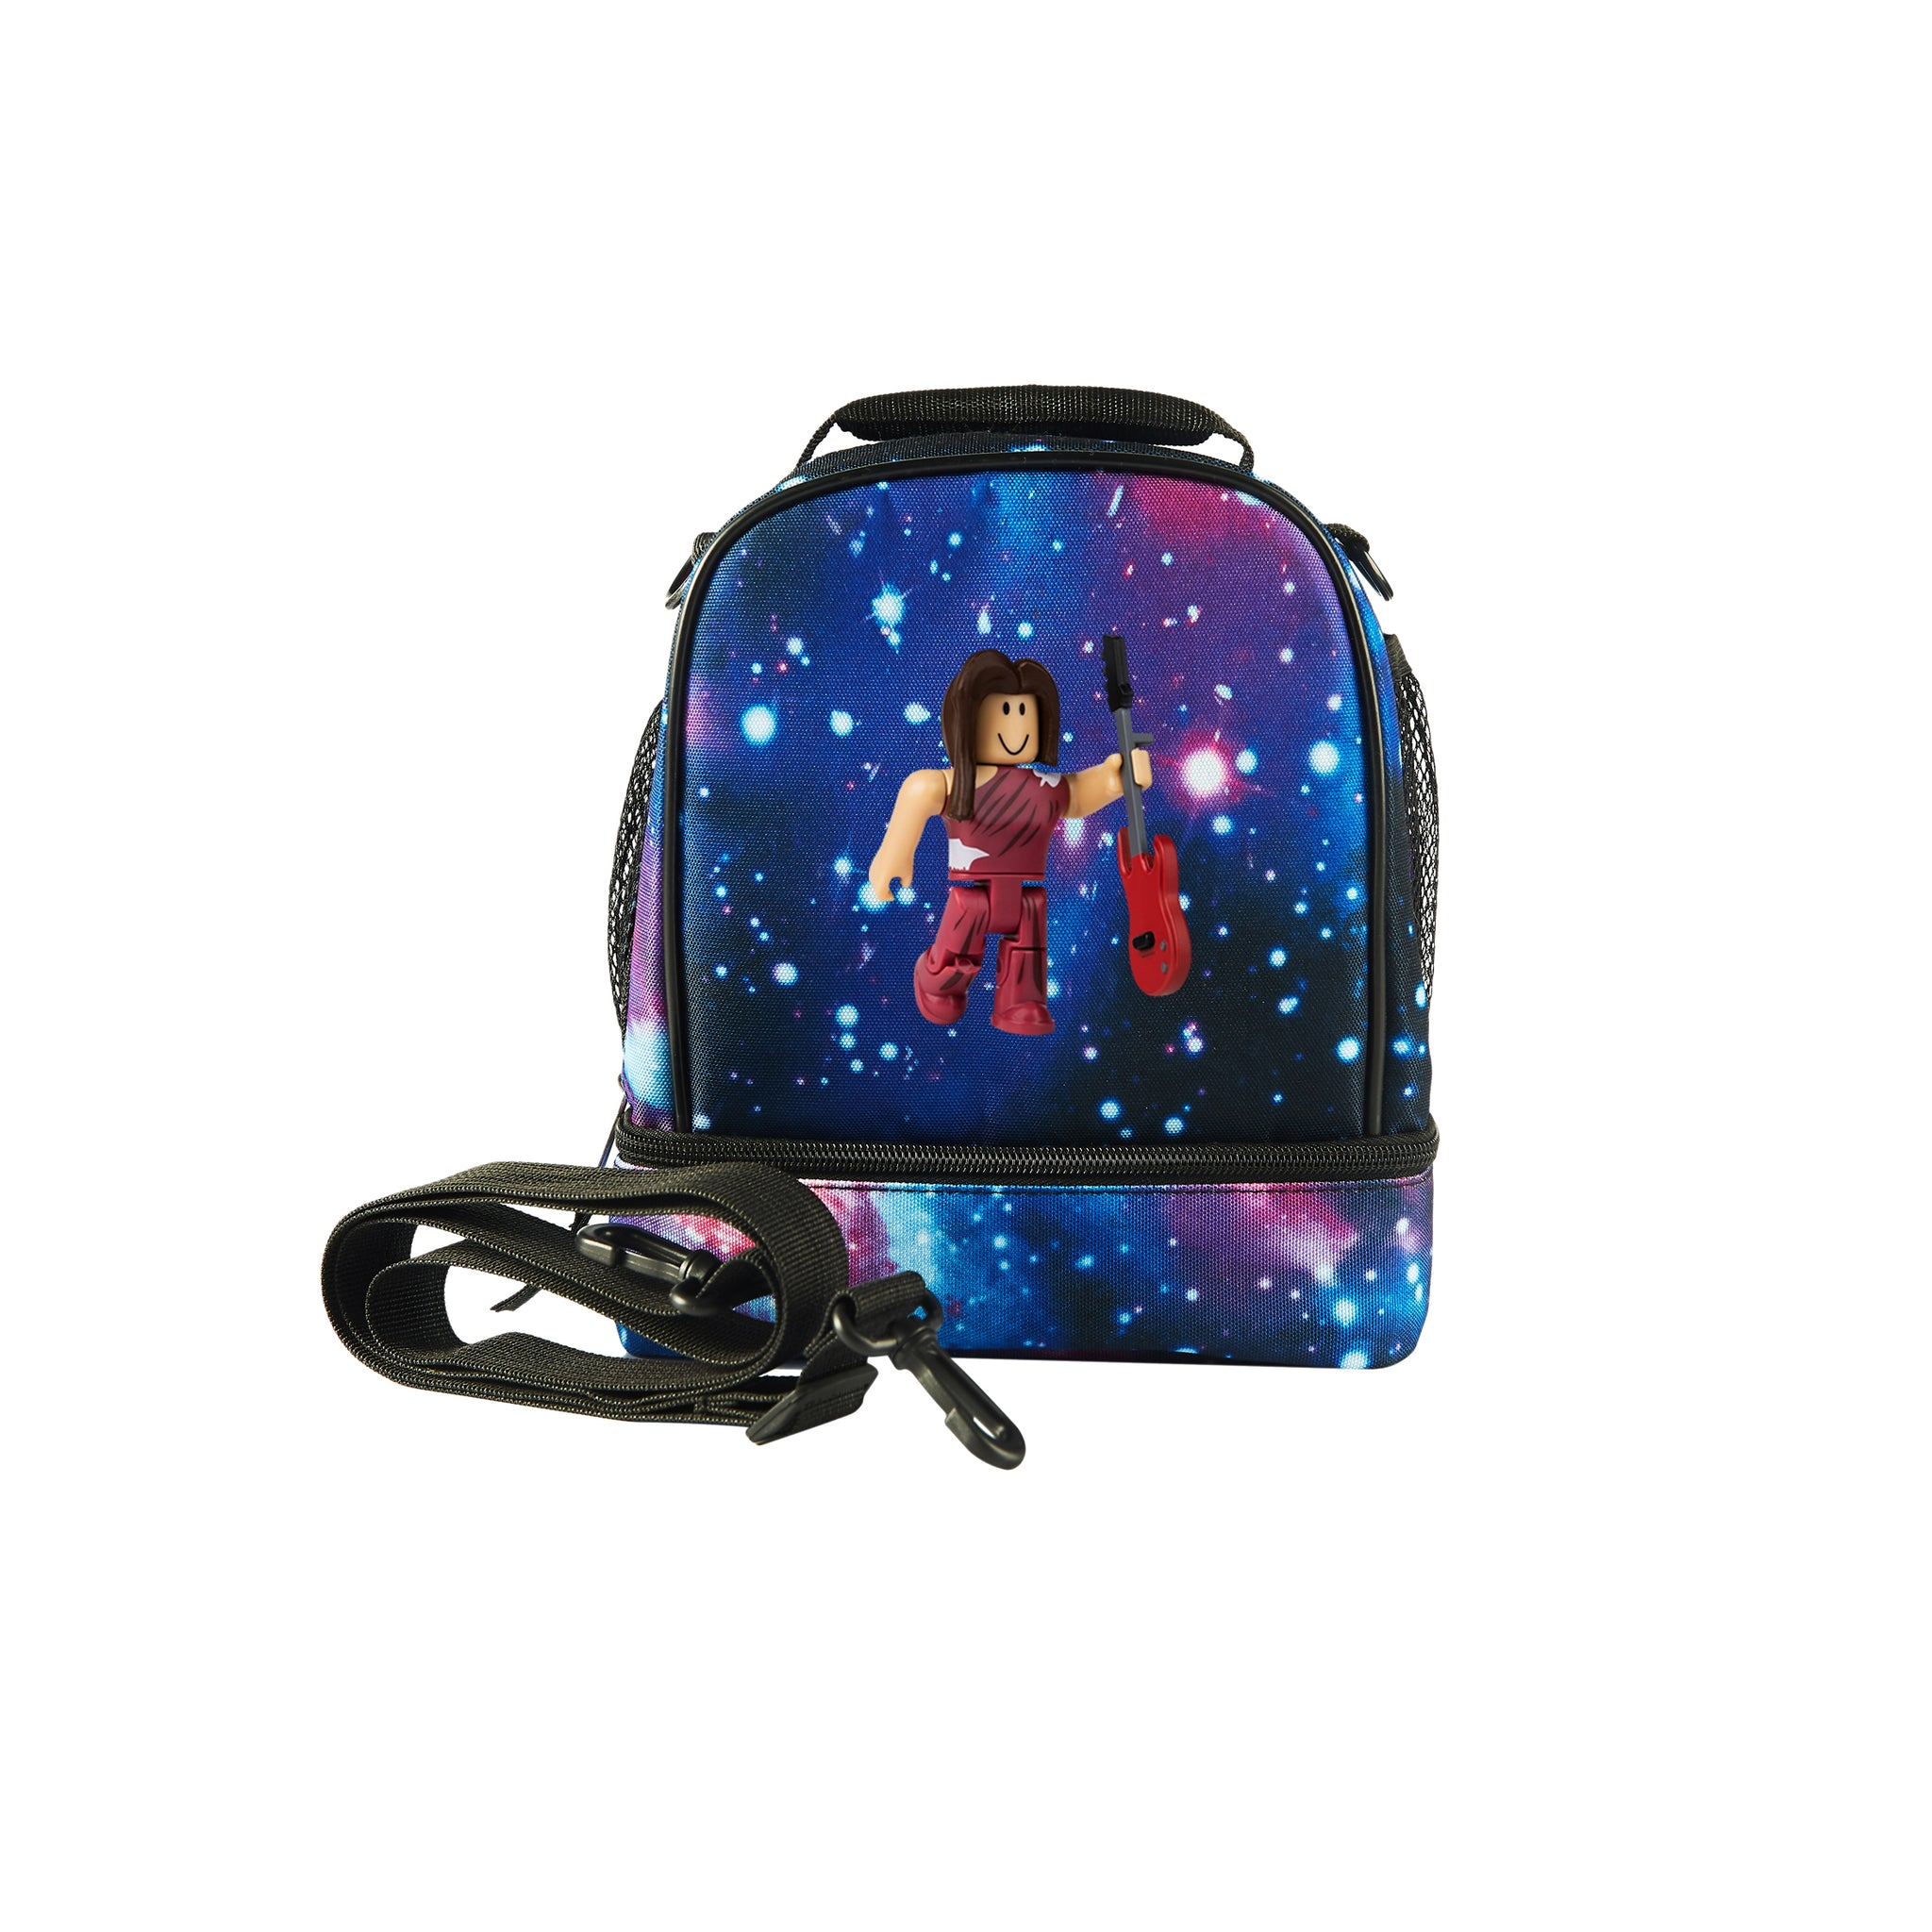 Roblox 2019 RoCitizens Scarlet Minifigure Logo Two Compartment Galaxy Lunch Bag